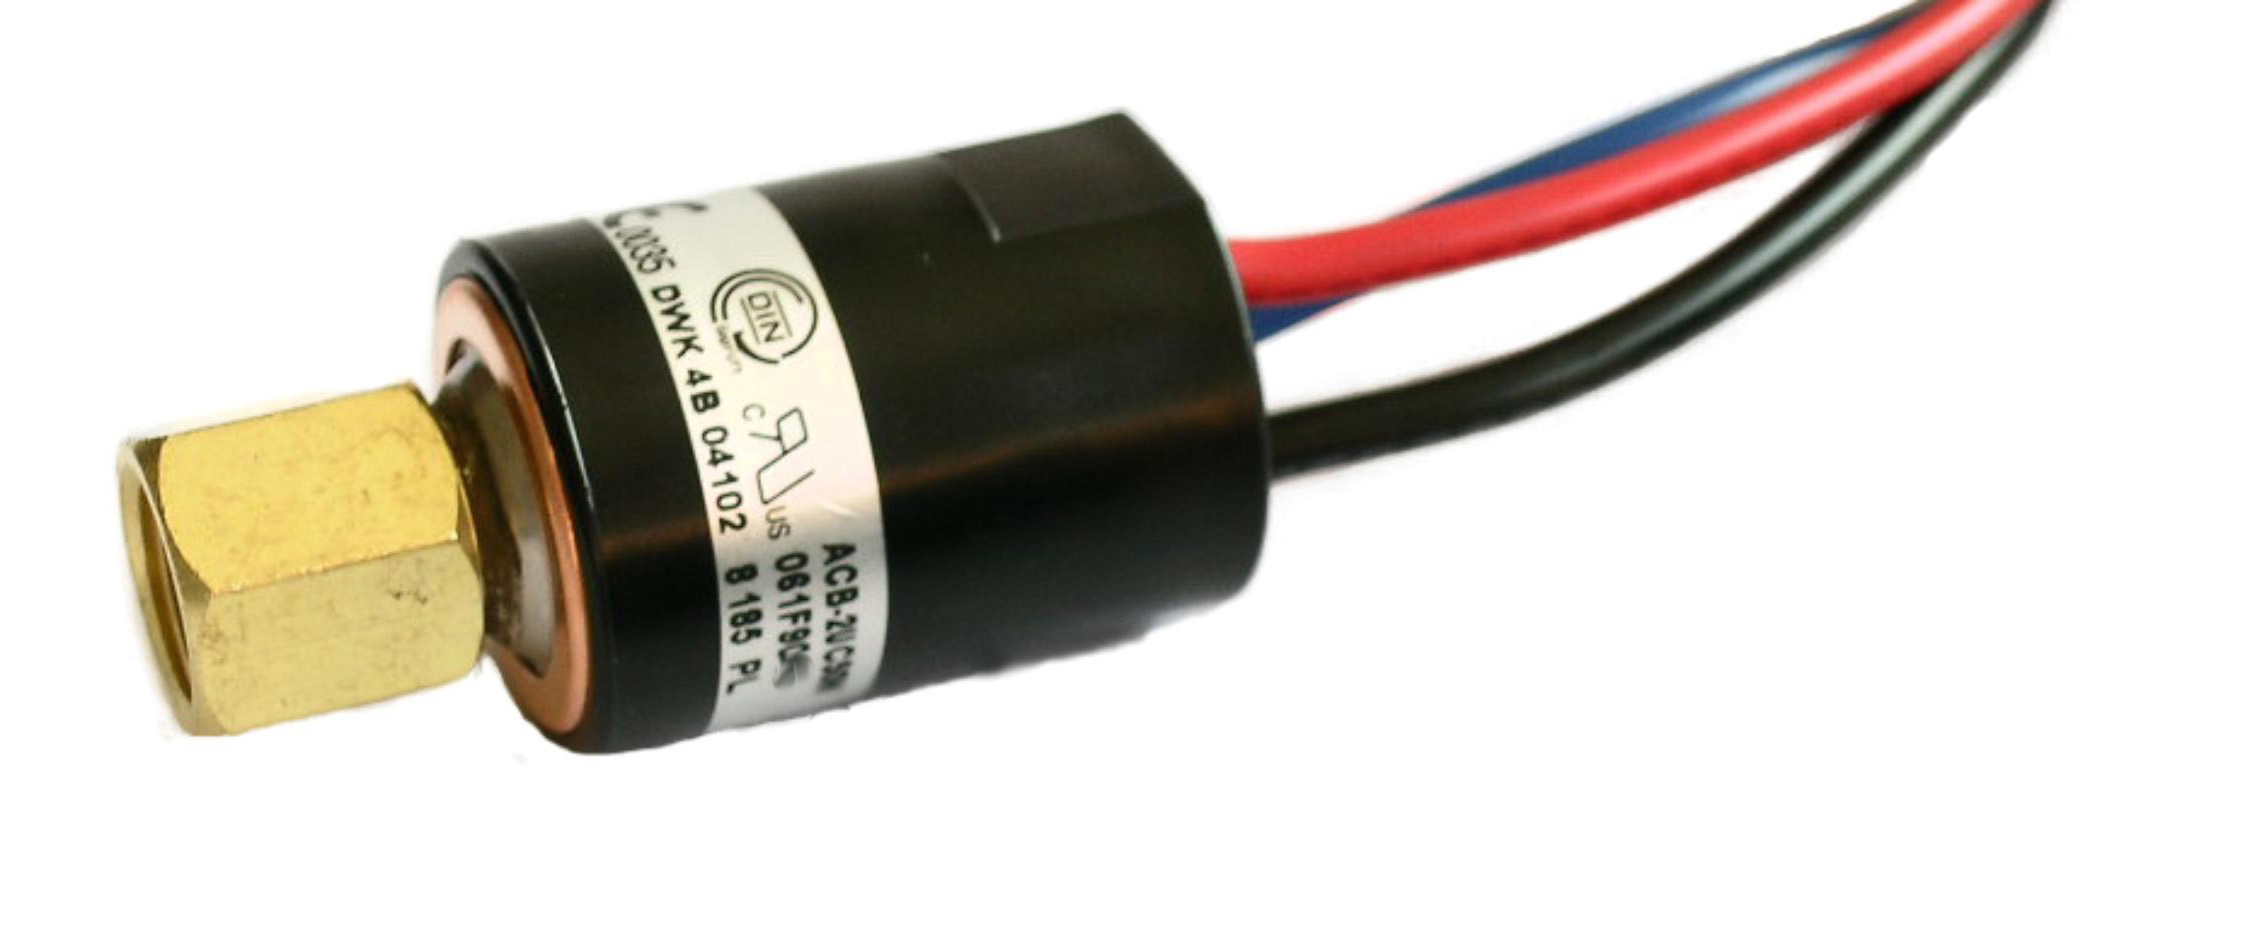 Product Name Cartridge Pressure Switch Type Acb Wiring Img107325974084